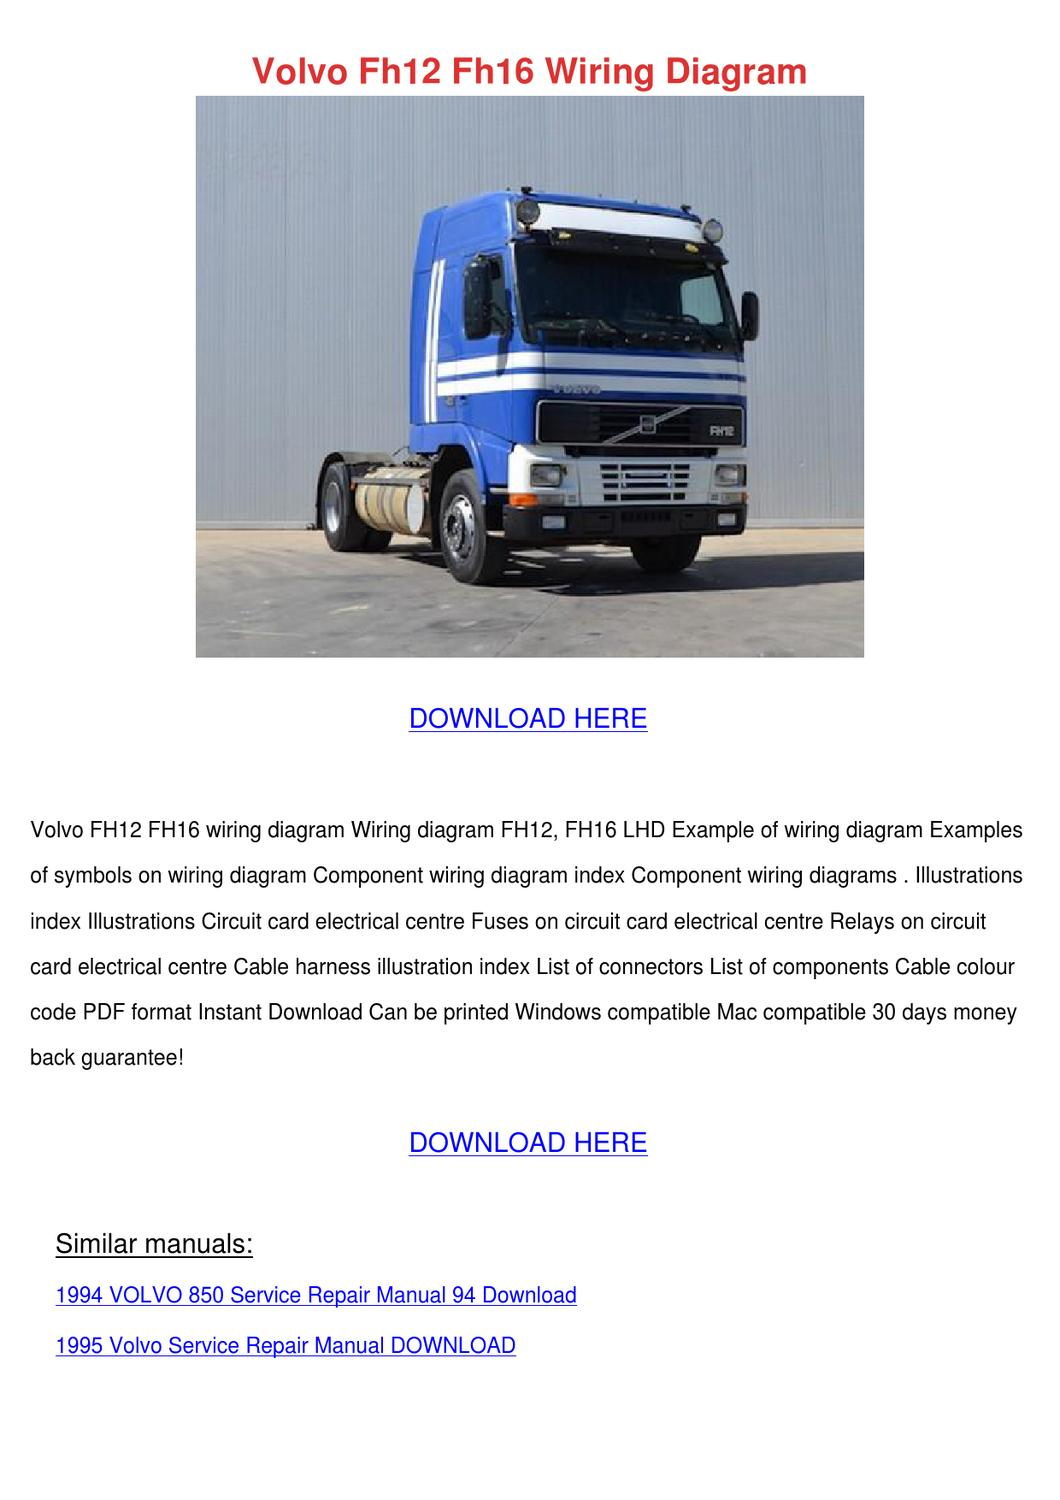 Volvo Fh12 Fh16 Wiring Diagram by RomaRainey - issuu on volvo brakes, volvo 740 diagram, volvo exhaust, volvo yaw rate sensor, volvo dashboard, volvo girls, volvo s60 fuse diagram, volvo fuse box location, international truck electrical diagrams, volvo recall information, volvo xc90 fuse diagram, volvo type r, volvo battery, volvo truck radio wiring harness, volvo tools, volvo relay diagram, volvo sport, volvo maintenance schedule, volvo ignition, volvo snowmobile,